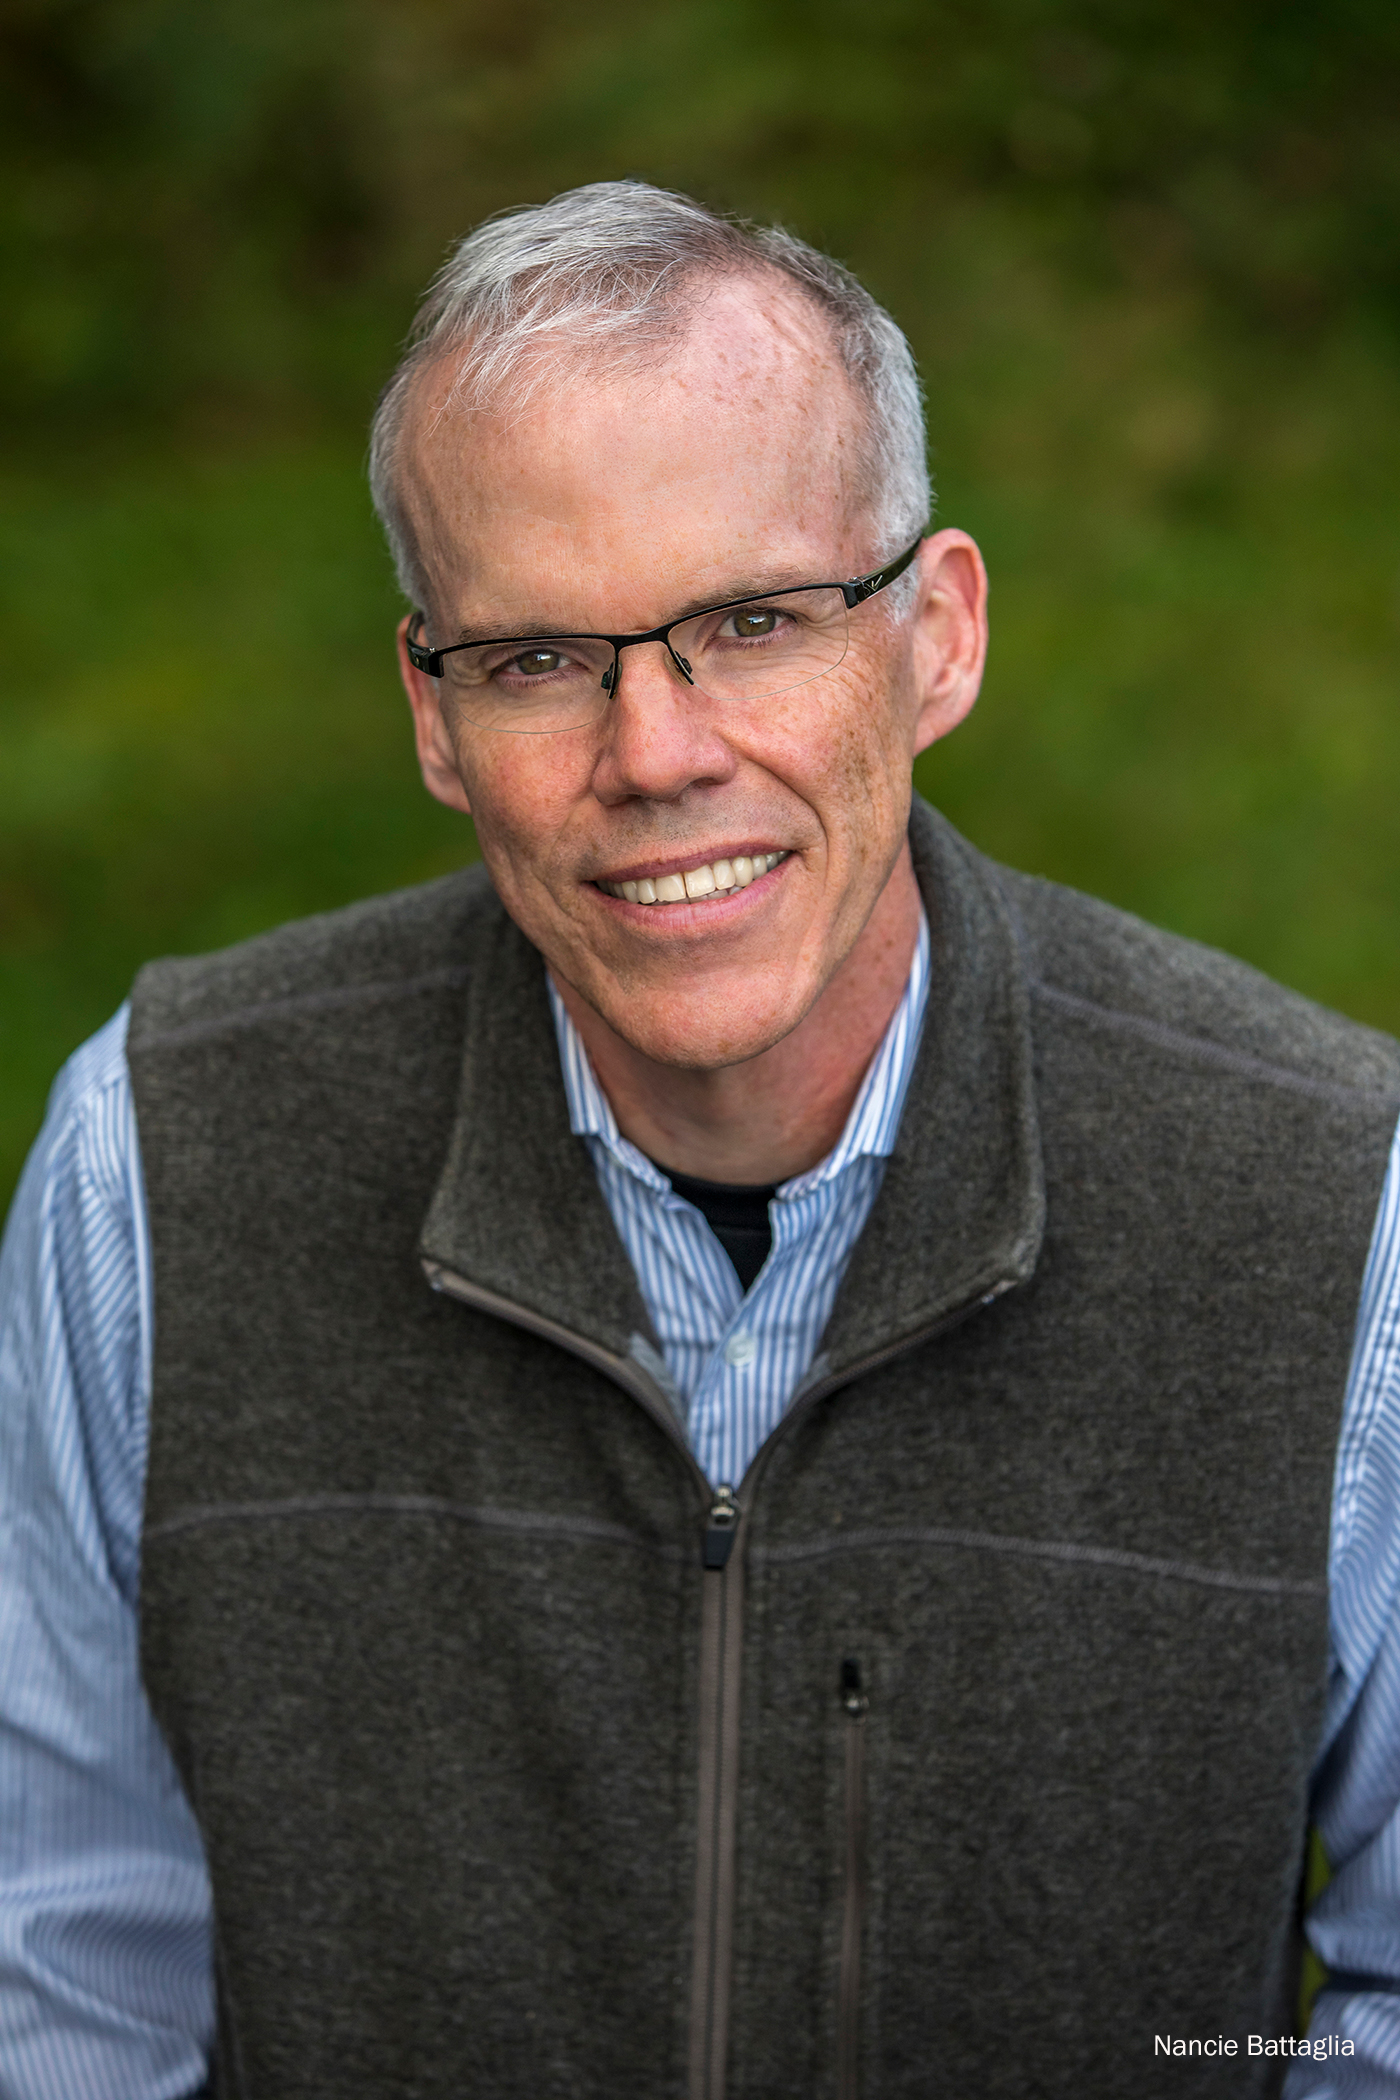 Bill McKibben photo by Nancie Battaglia